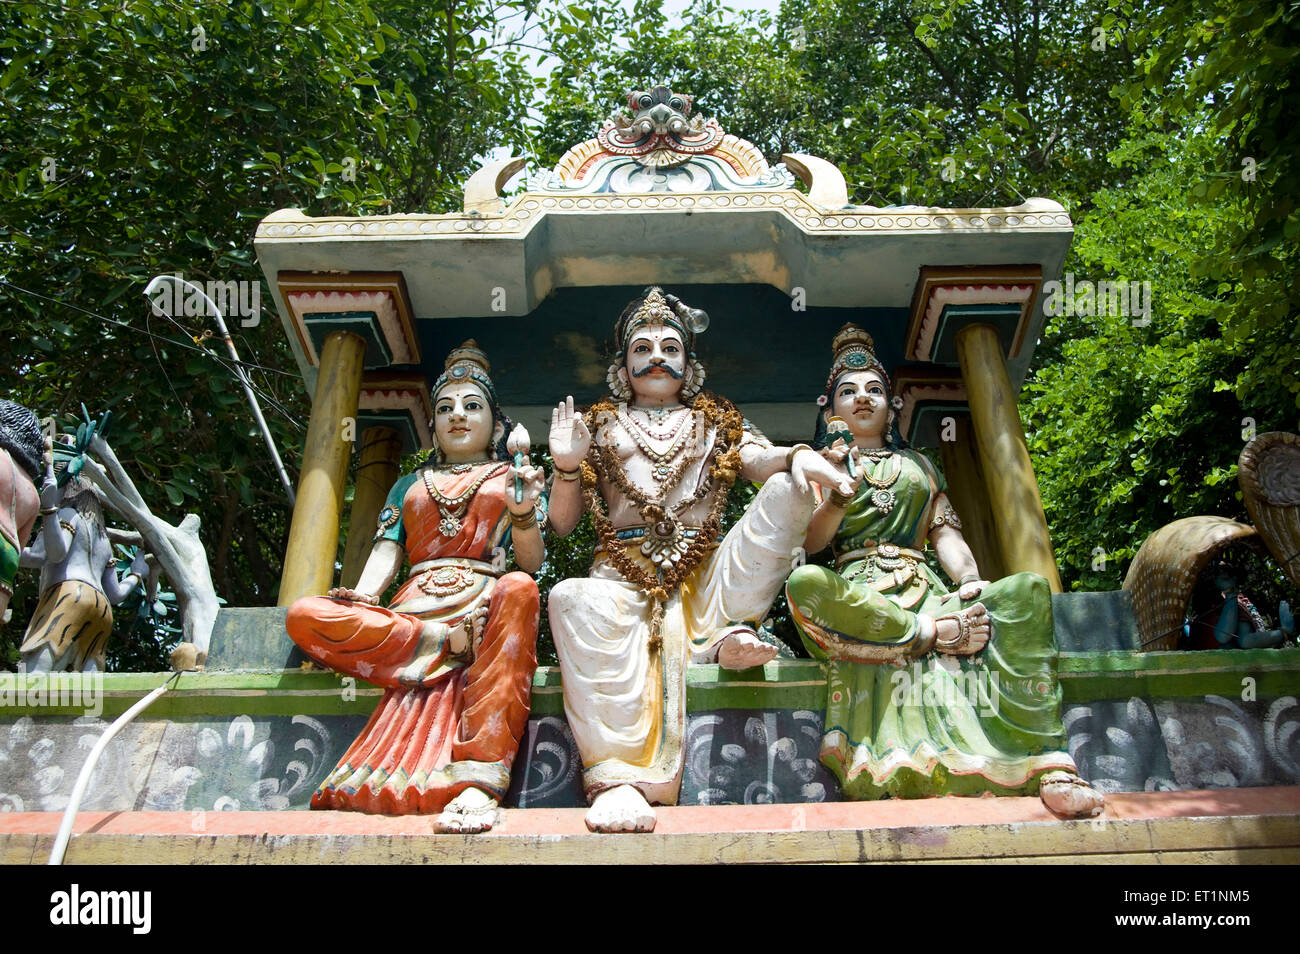 Stucco figures of god and goddesses on small temple in Tamil Nadu ; India - Stock Image